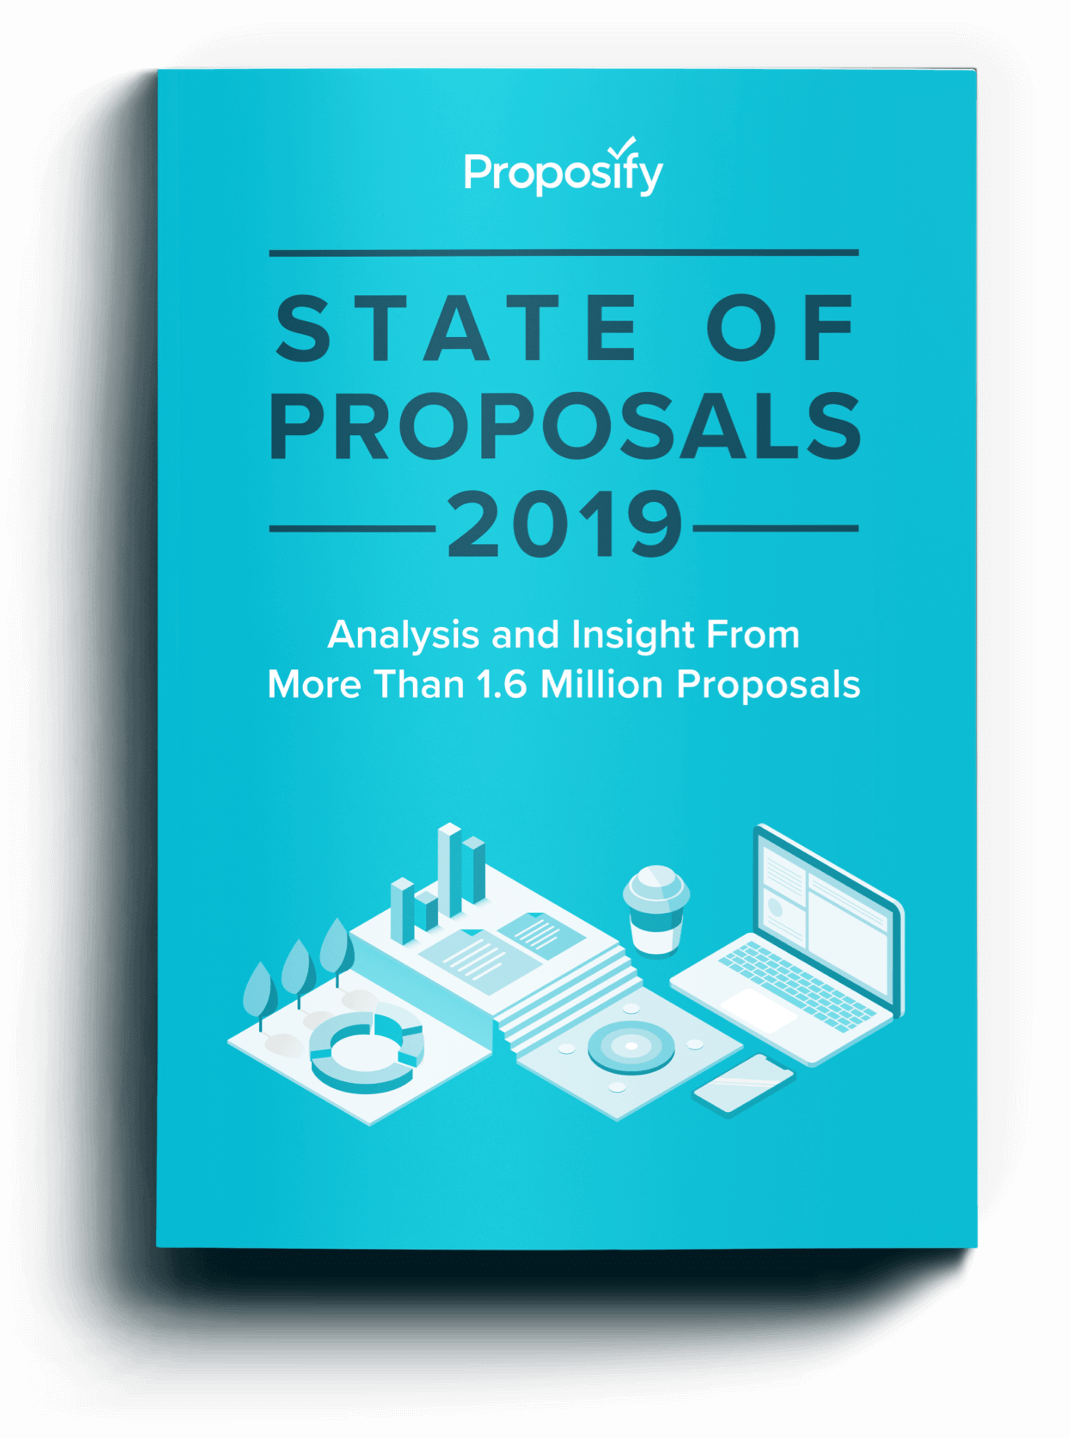 The State of Proposals 2019